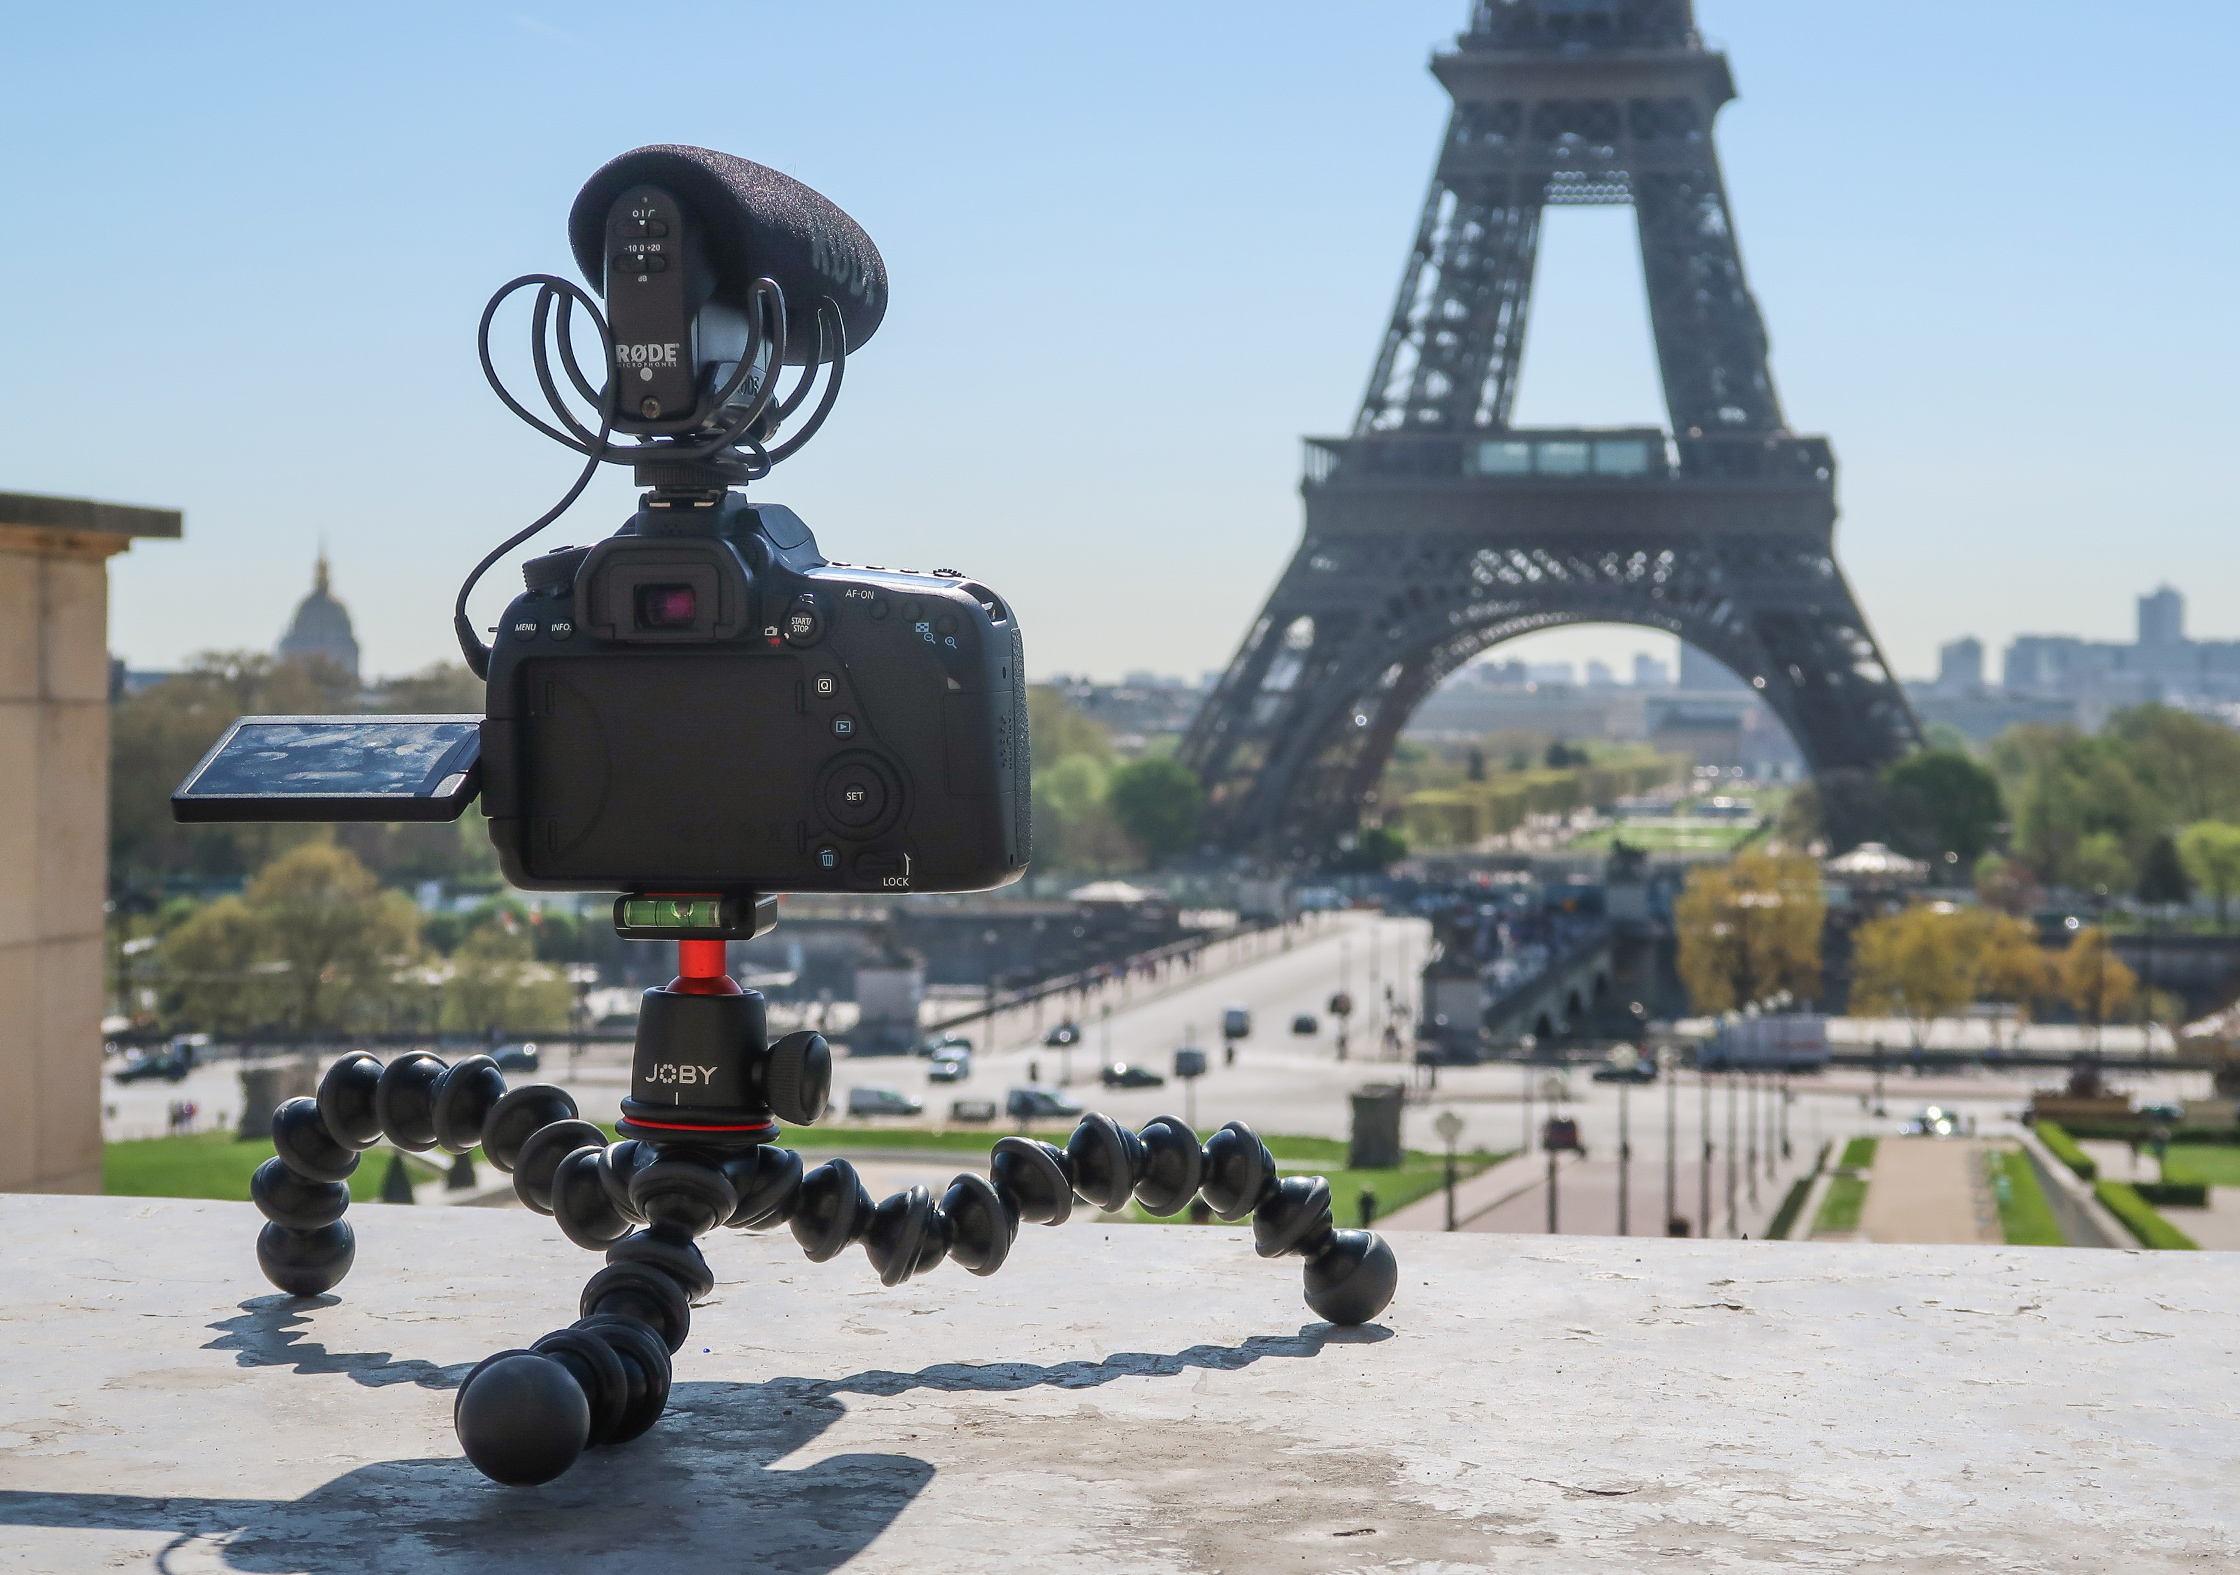 JOBY GorillaPod 3K At The Eiffel Tower In Paris, France